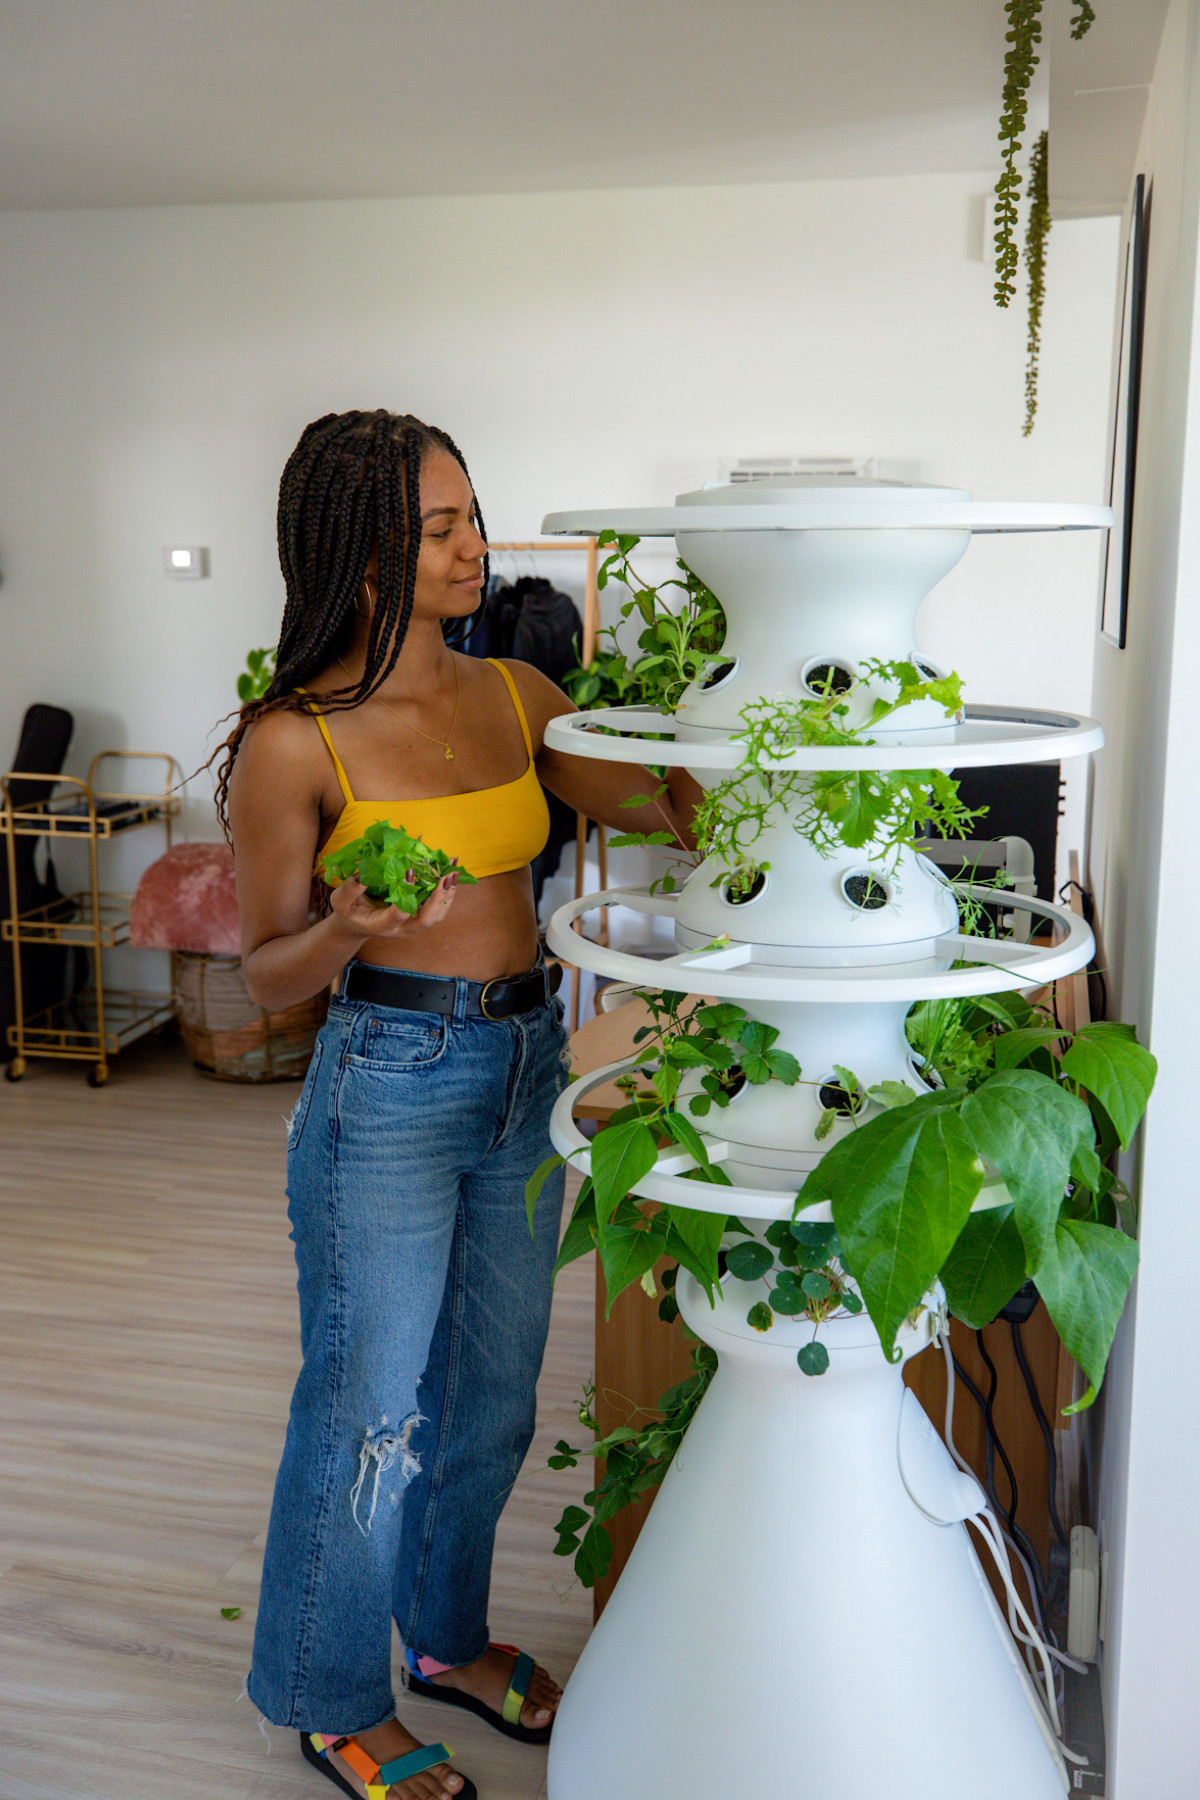 """""""Hydroponics, or farming in this way, is a really great way to fight against food insecurity,"""" Thomas shares.Lettuce Grow Hydroponic Garden. Photographed by Cher Martinez for Lonny."""